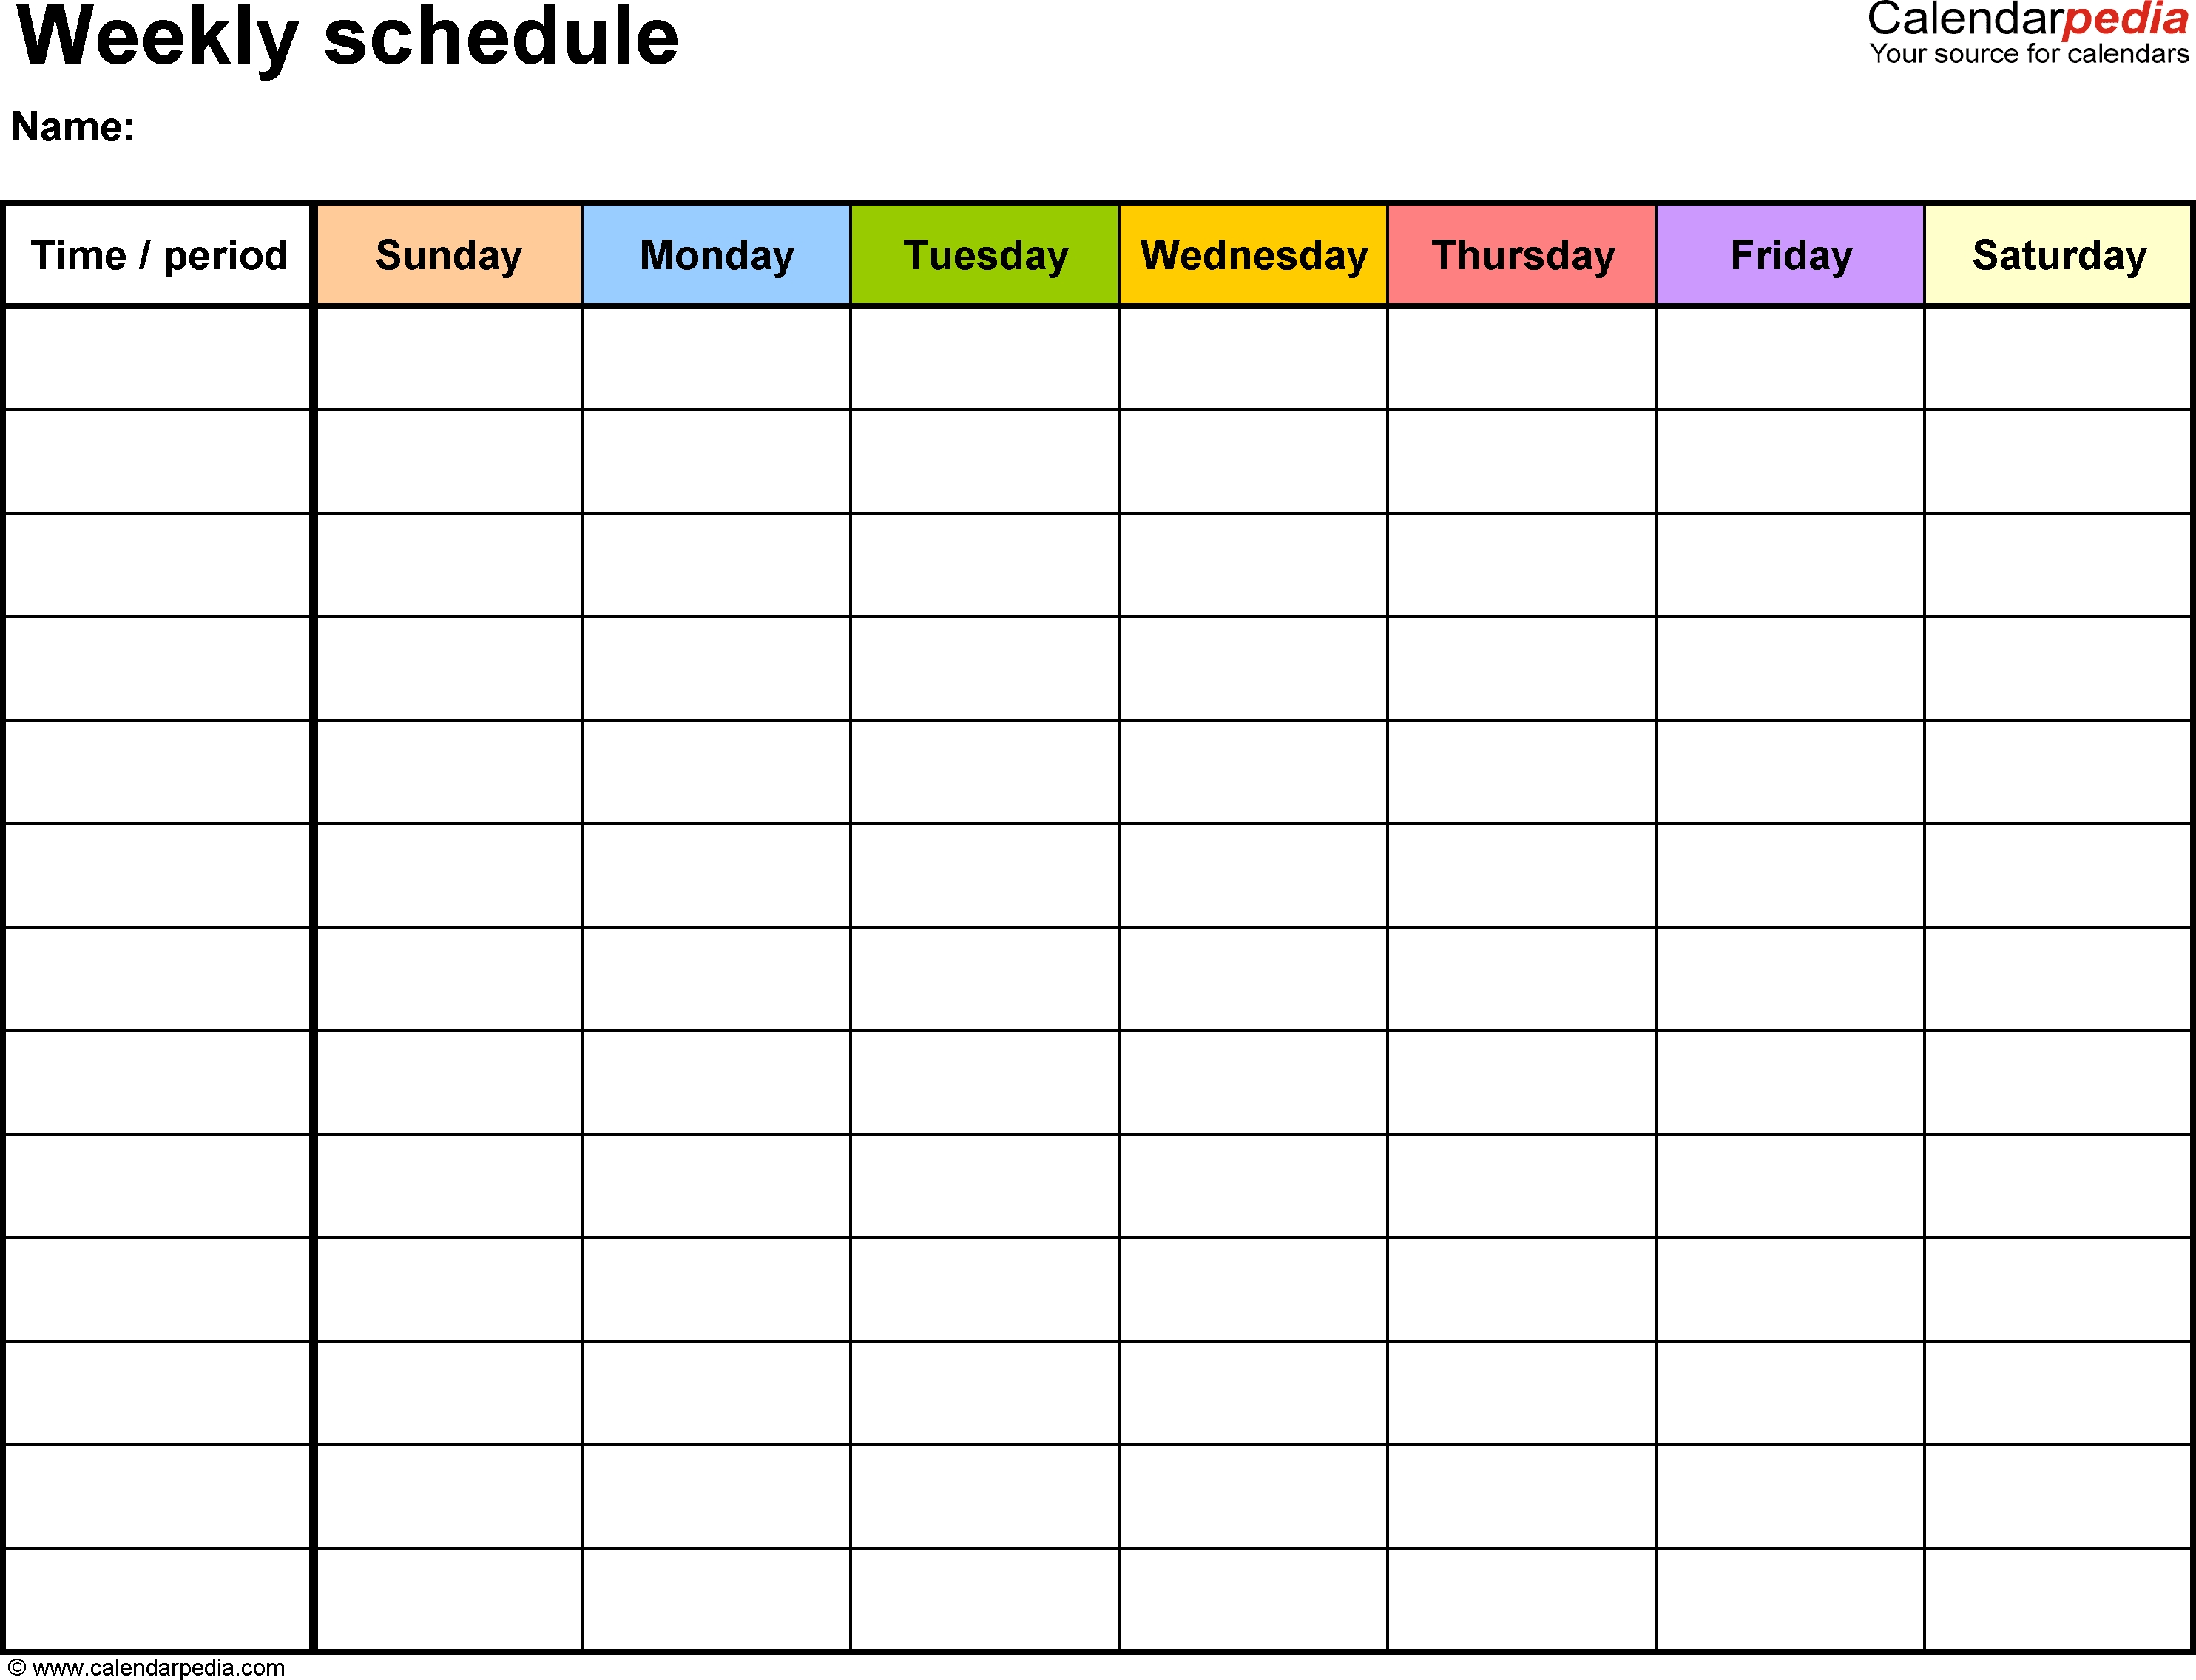 Free Weekly Schedule Templates For Word - 18 Templates in Blank Weekly Monday Through Friday Calendar Template